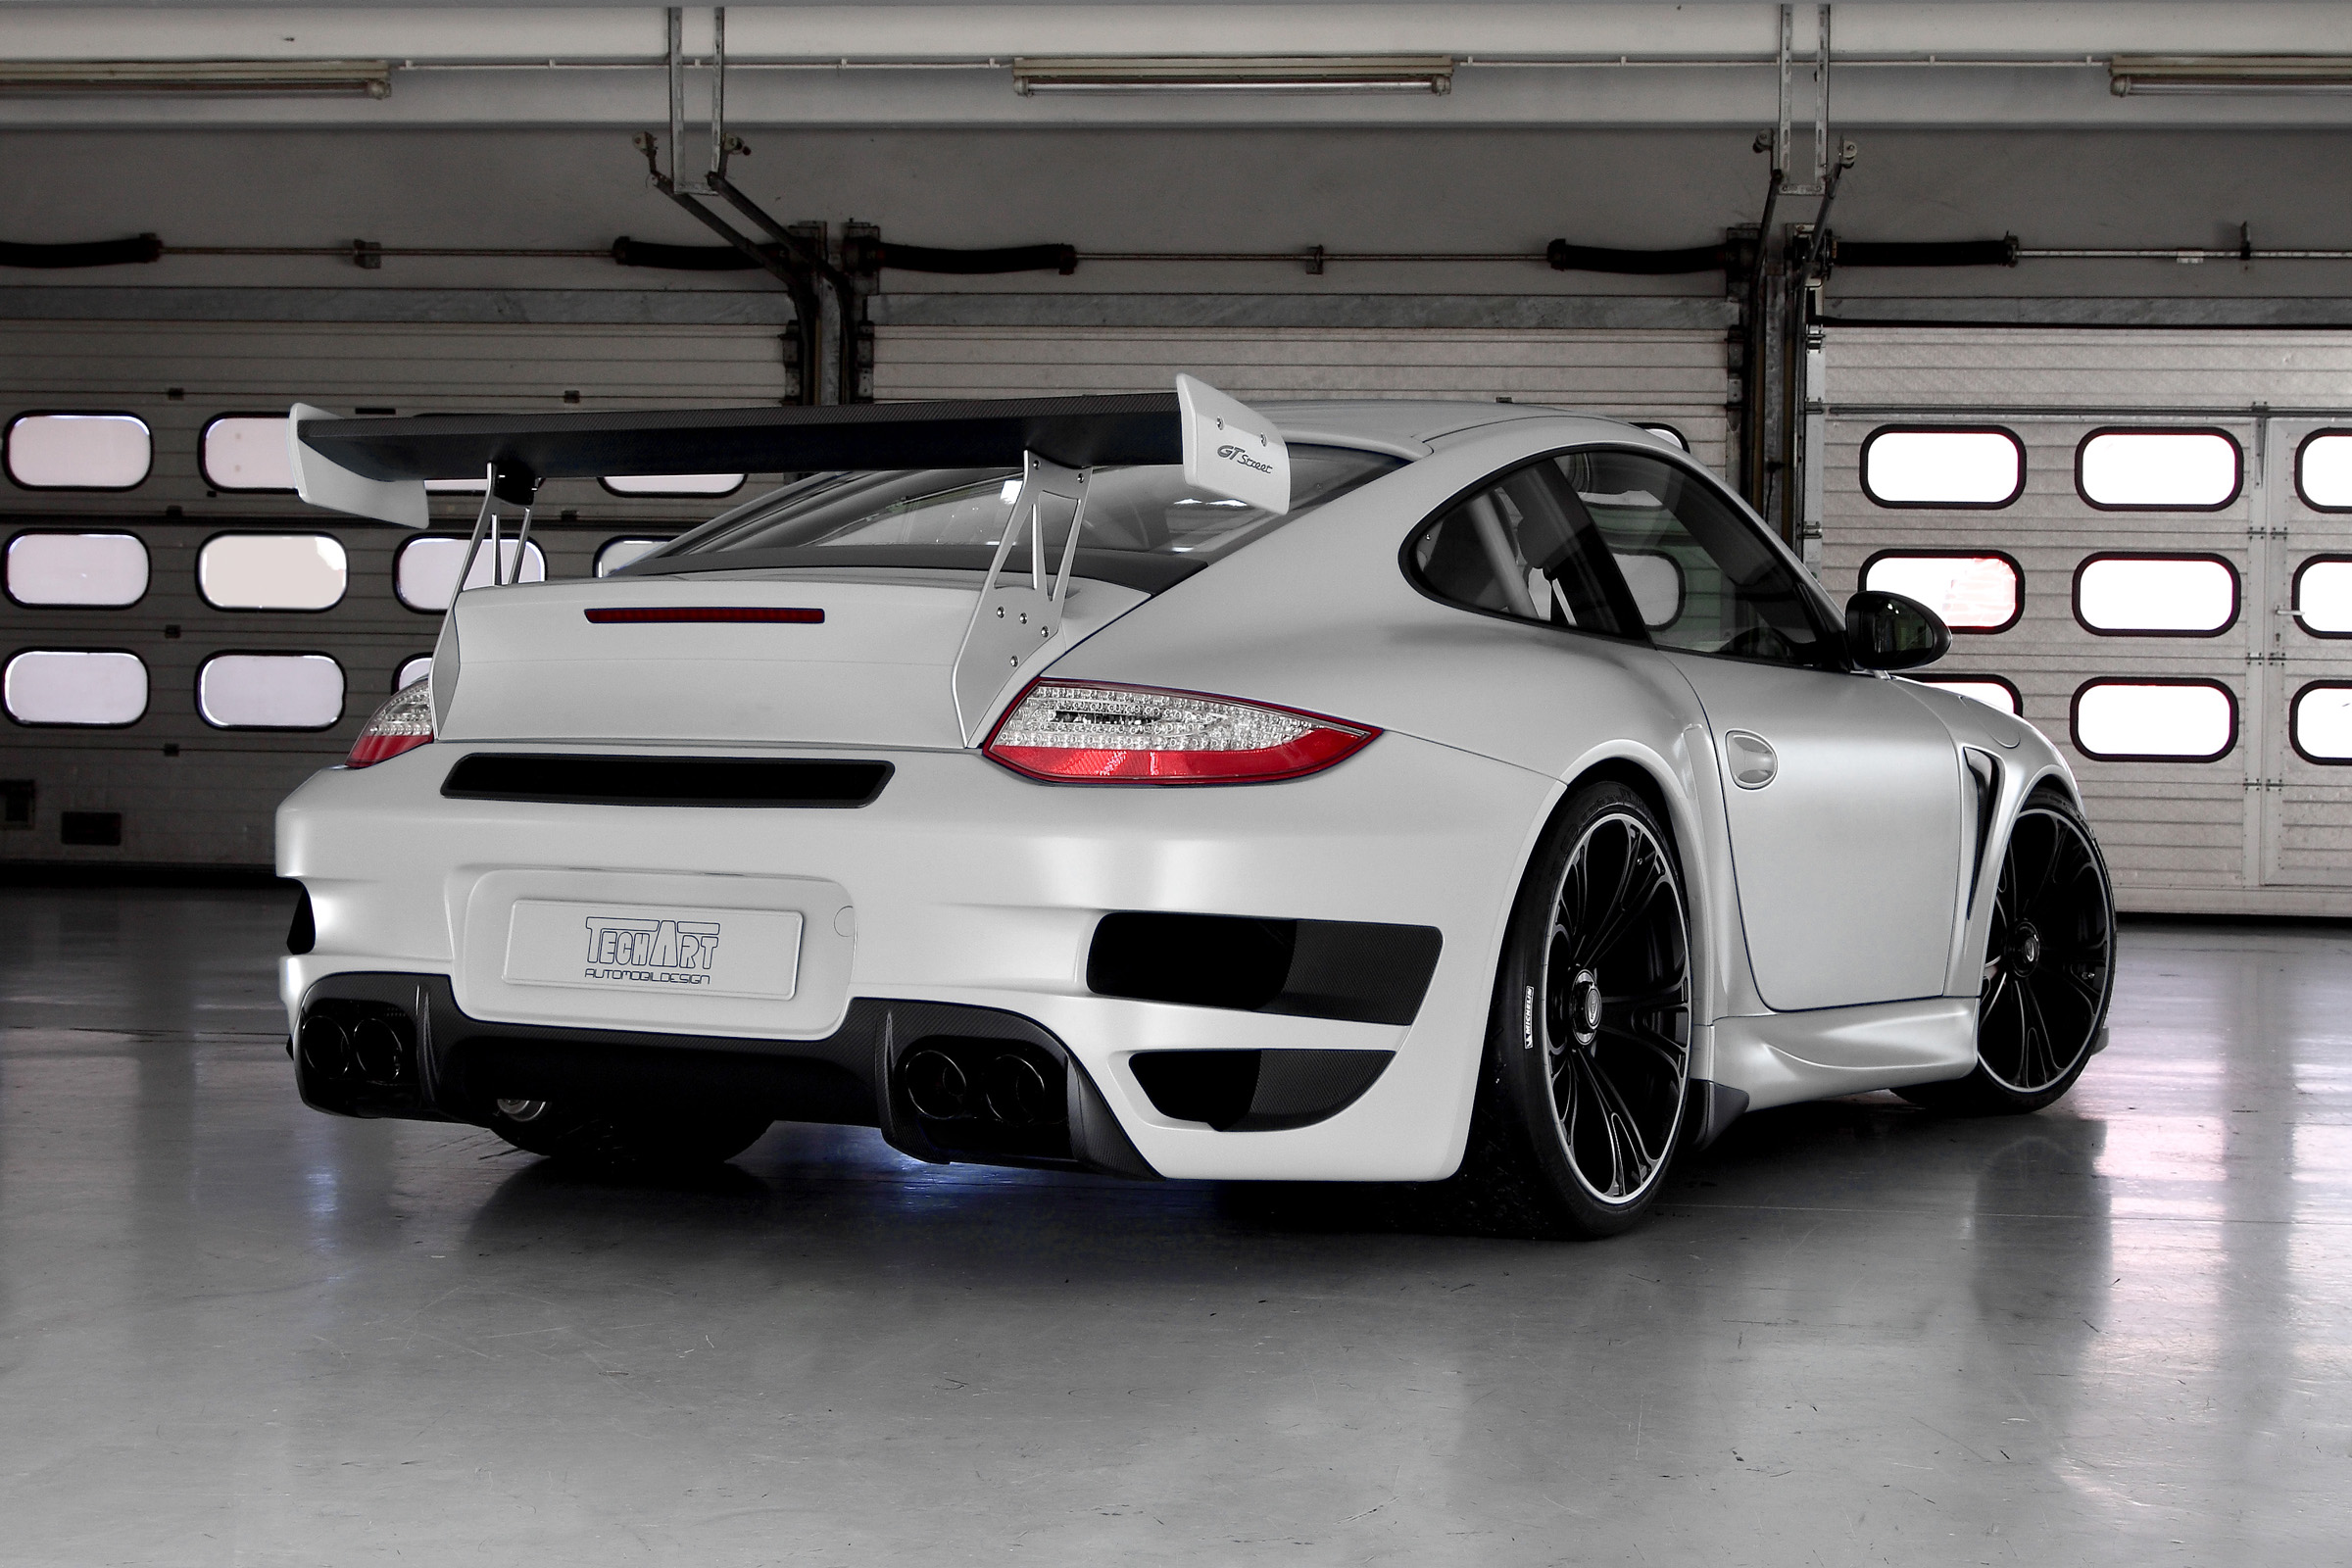 2 Remarkable Techart Porsche 911 Gt2 Gtstreet Rs Cars Trend